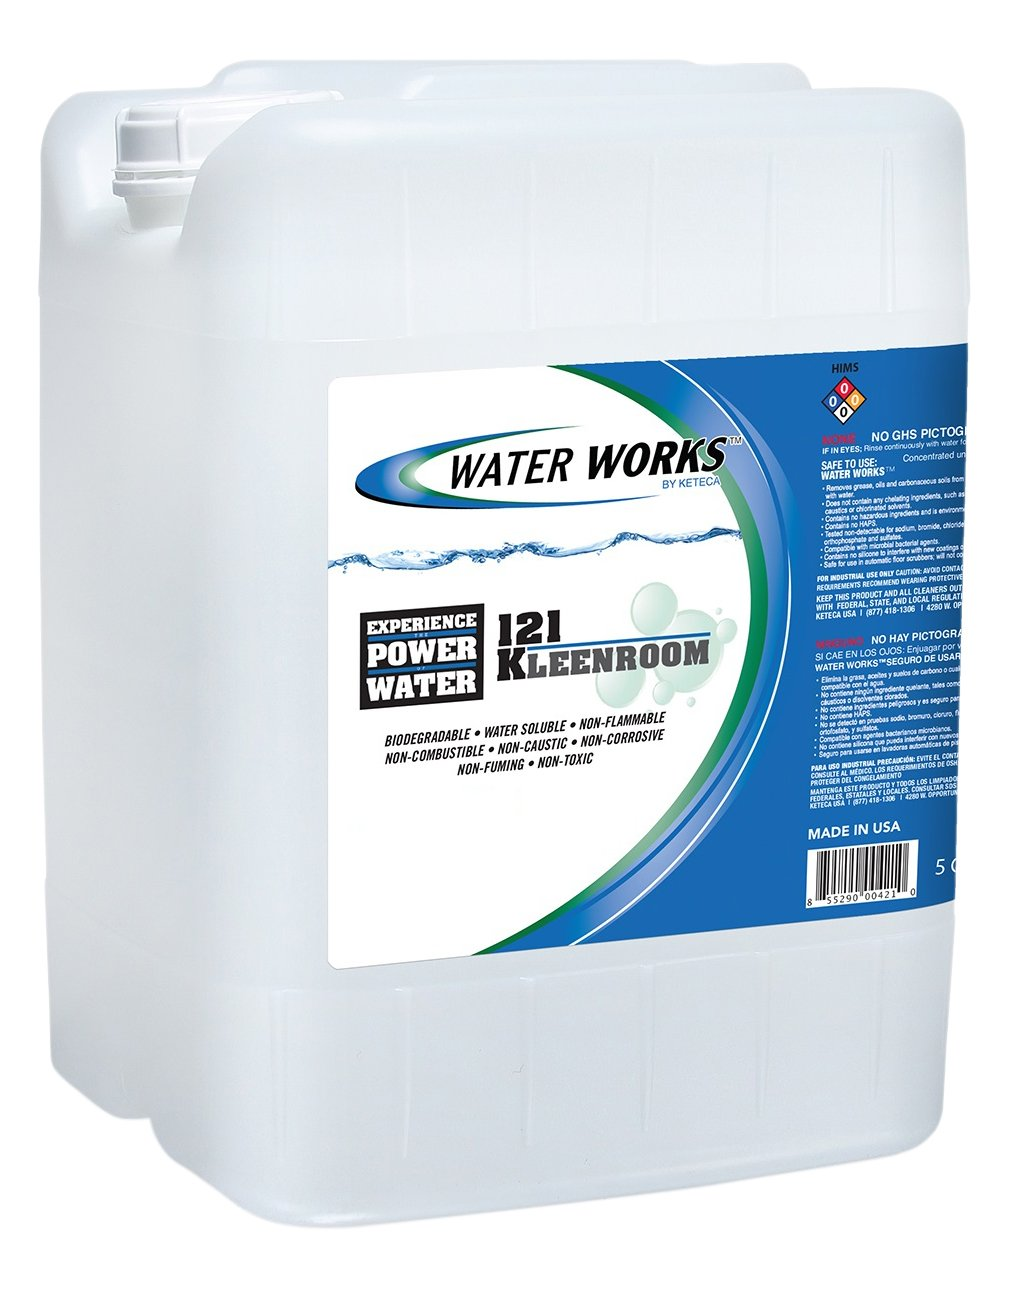 Water Works 121 KLEEN Room Surfactant-Based Floor Cleaner/Degreaser Concentrate, 5 Gallons